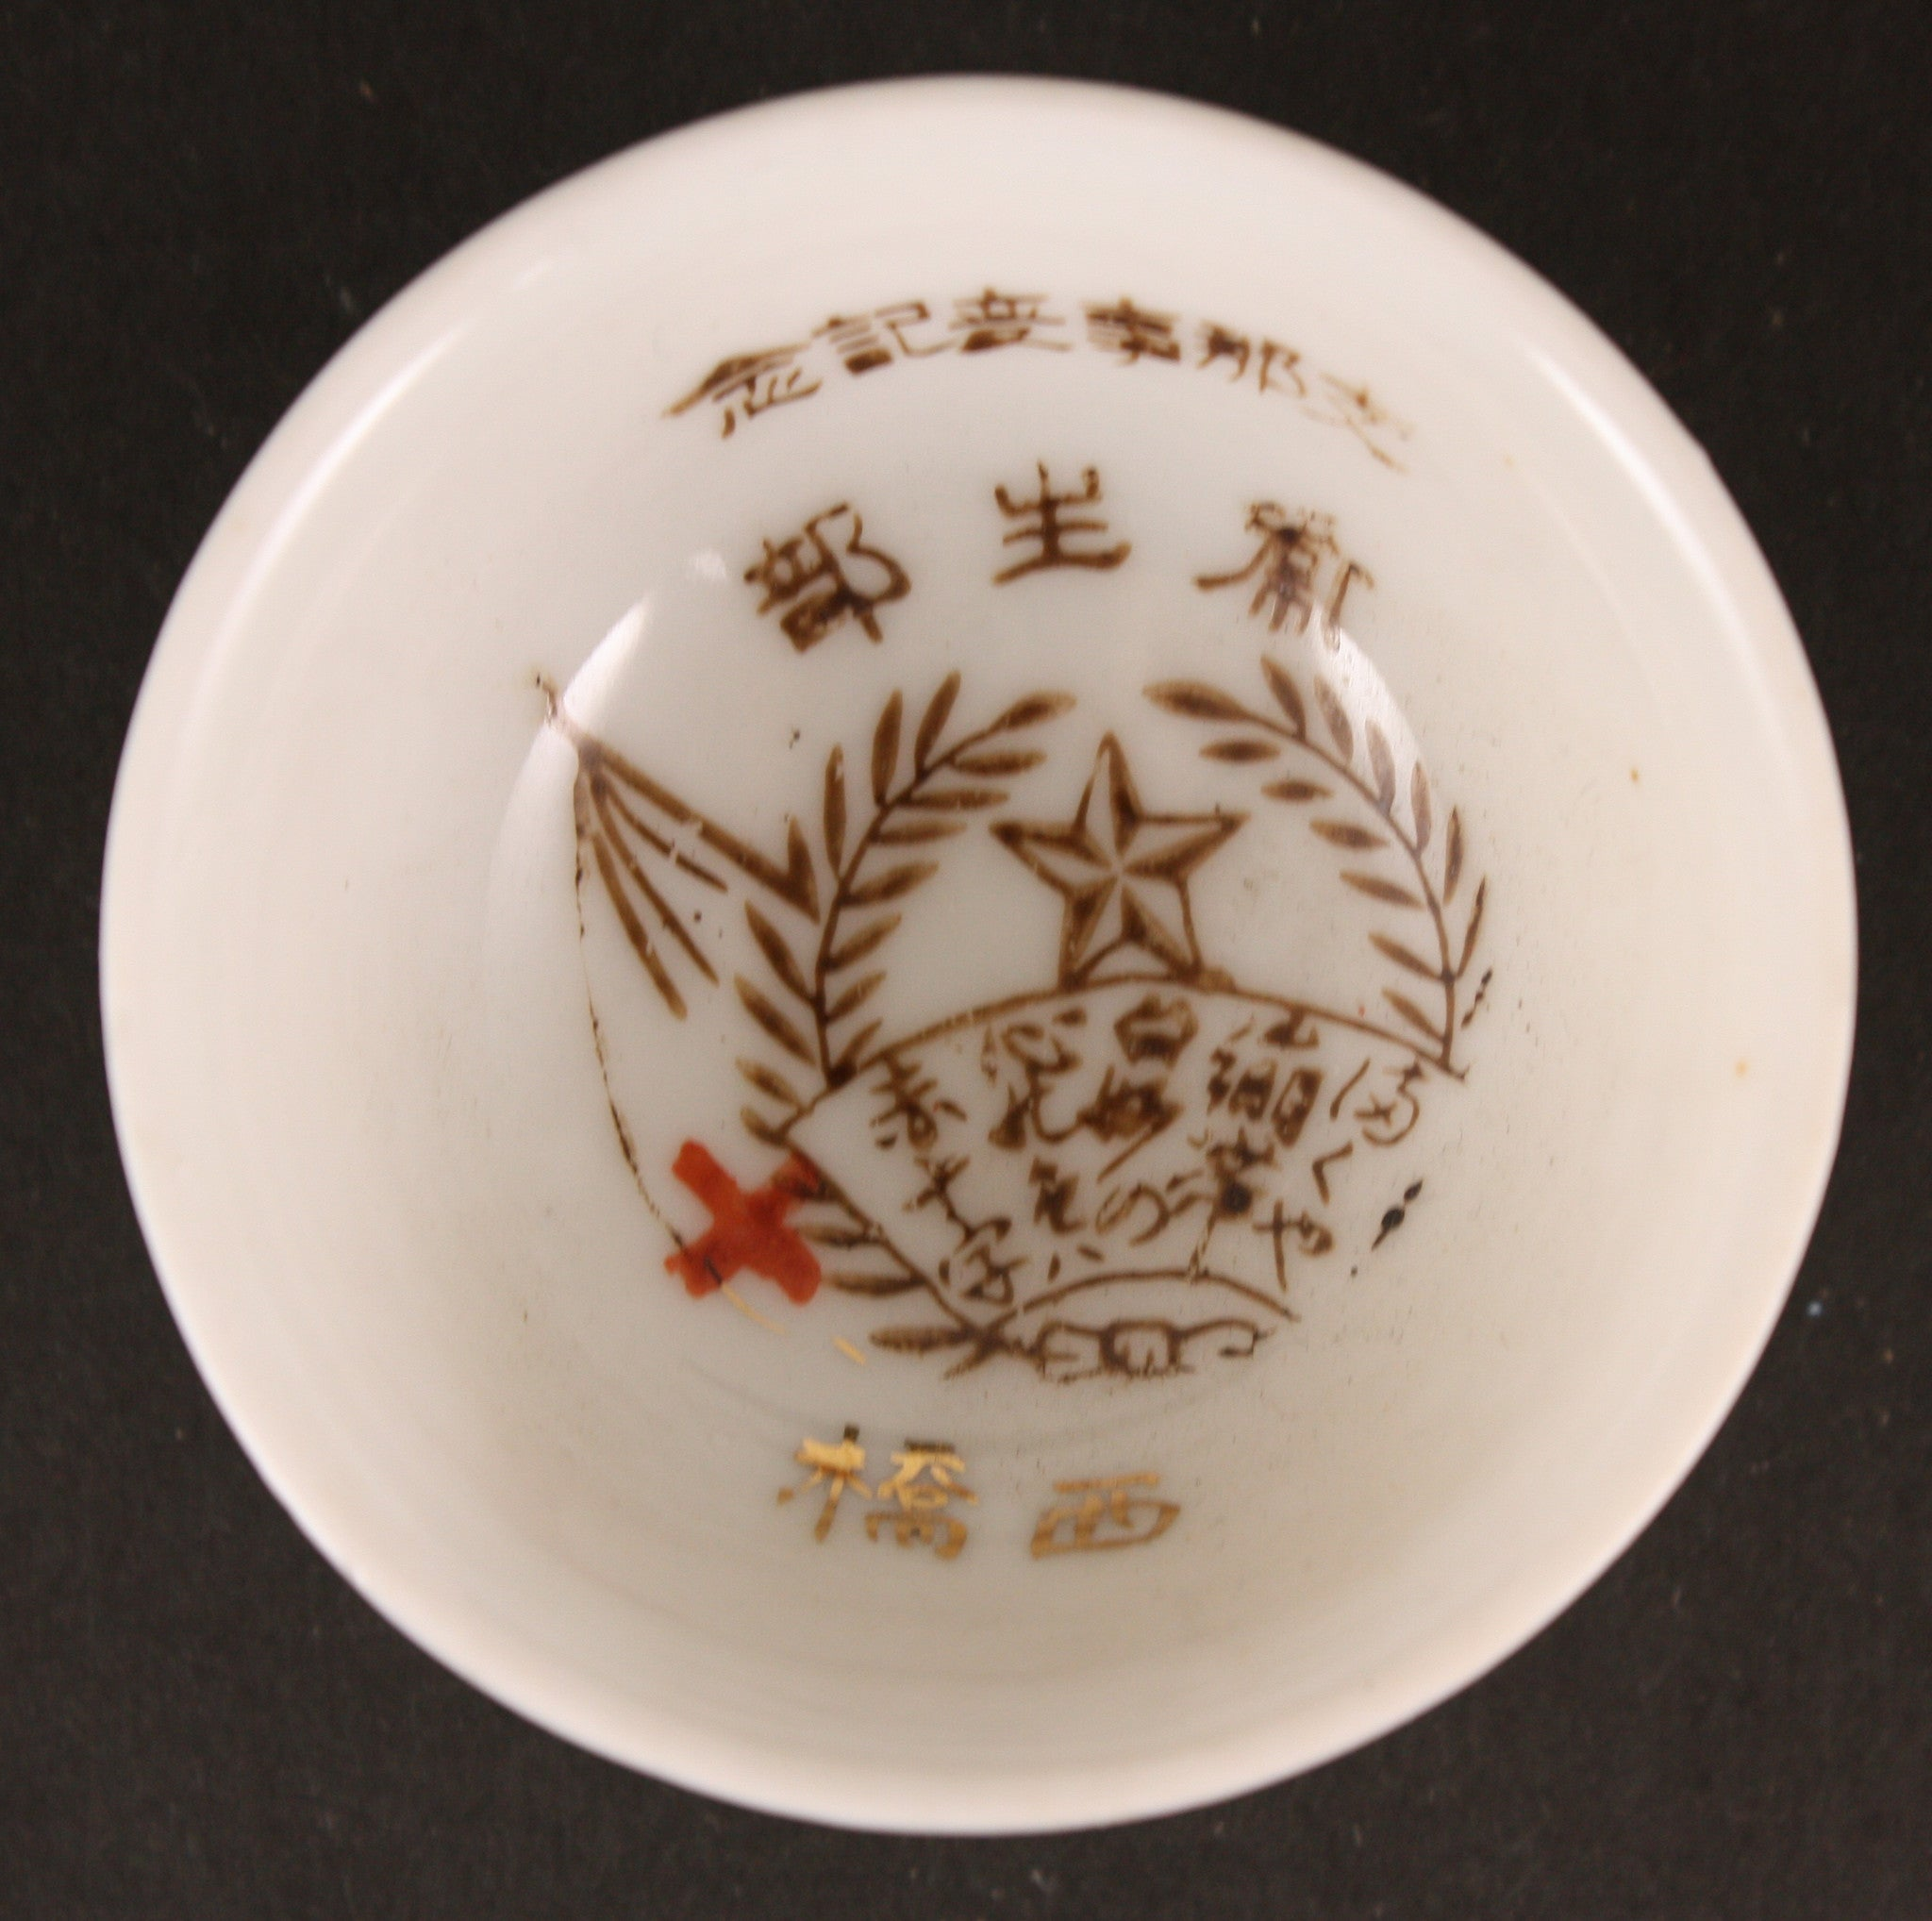 Antique Japanese Military WW2 China Incident Medic Army Sake Cup